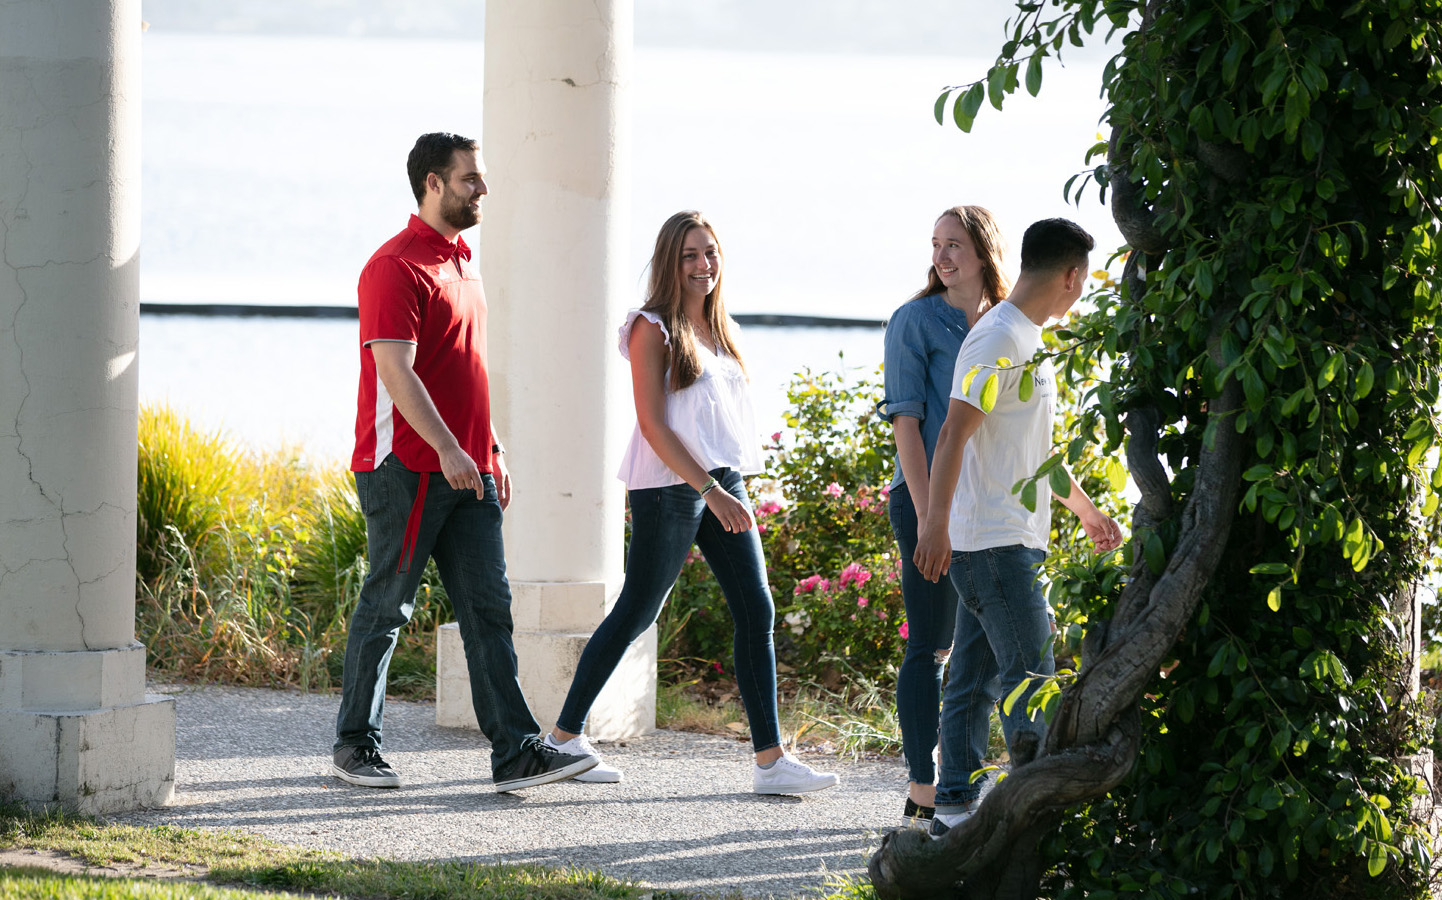 four Holy Names University students walking riverside in Oakland, CA